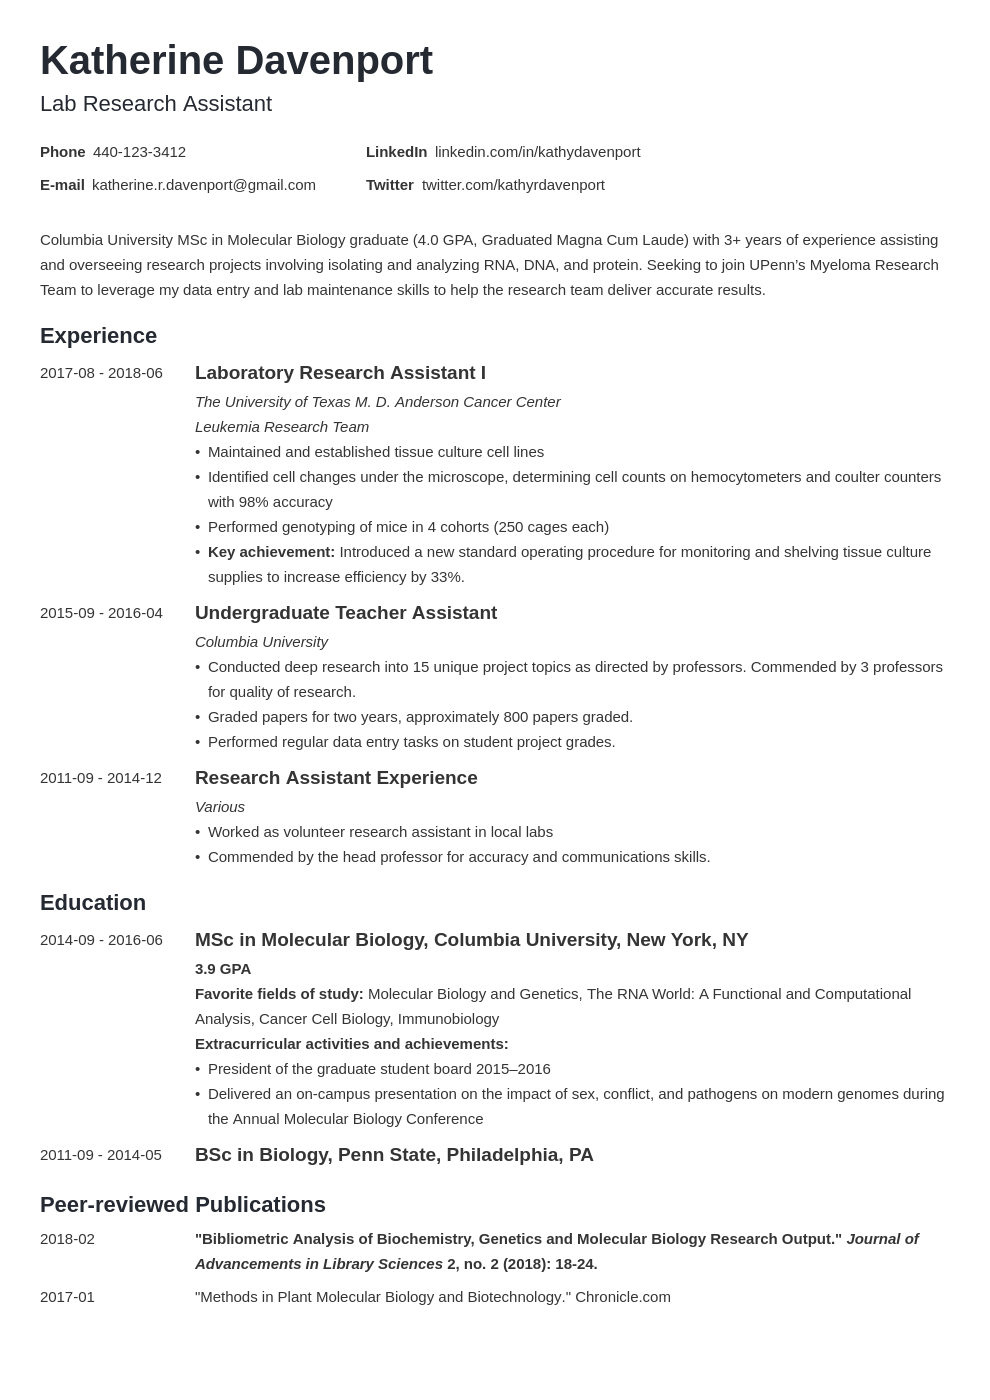 Research Assistant Resume Example Template Minimo In 2020 Resume Examples Research Assistant Job Resume Examples